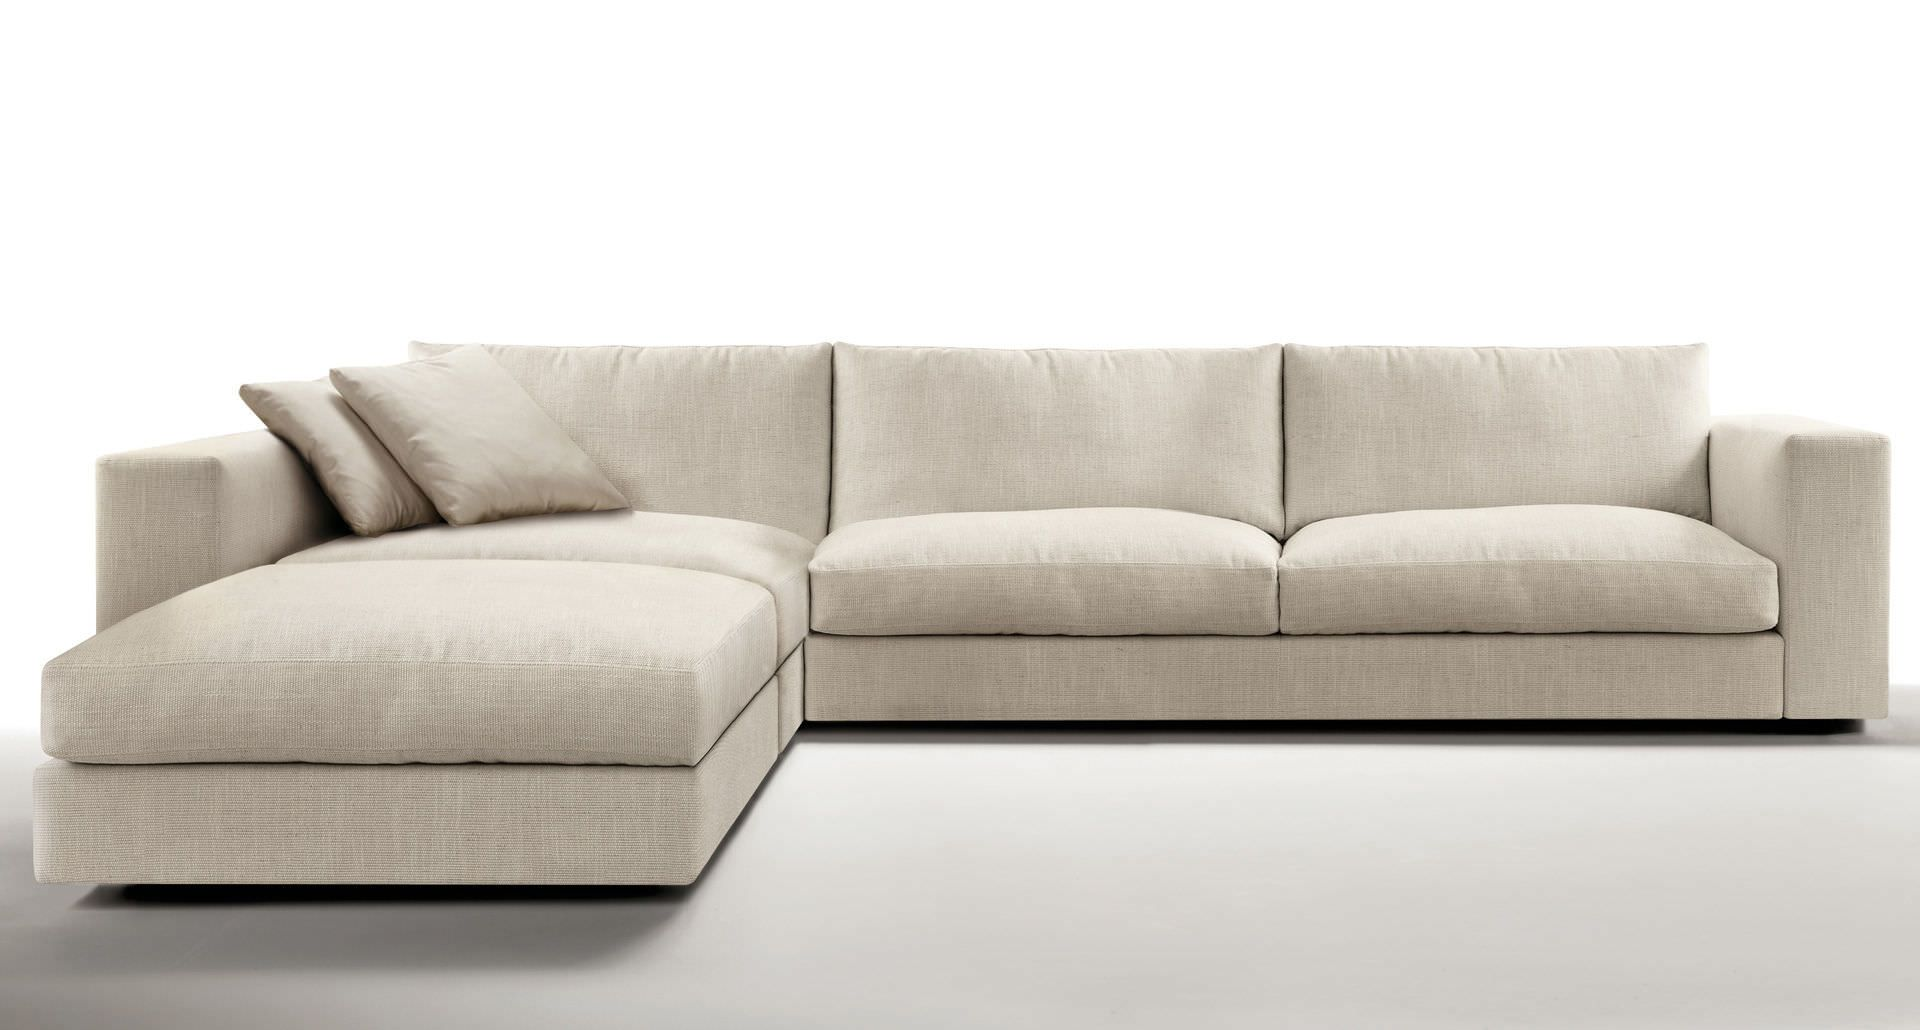 Corner sofa in indiacorner sofa manufacturers in india for Corner loveseats